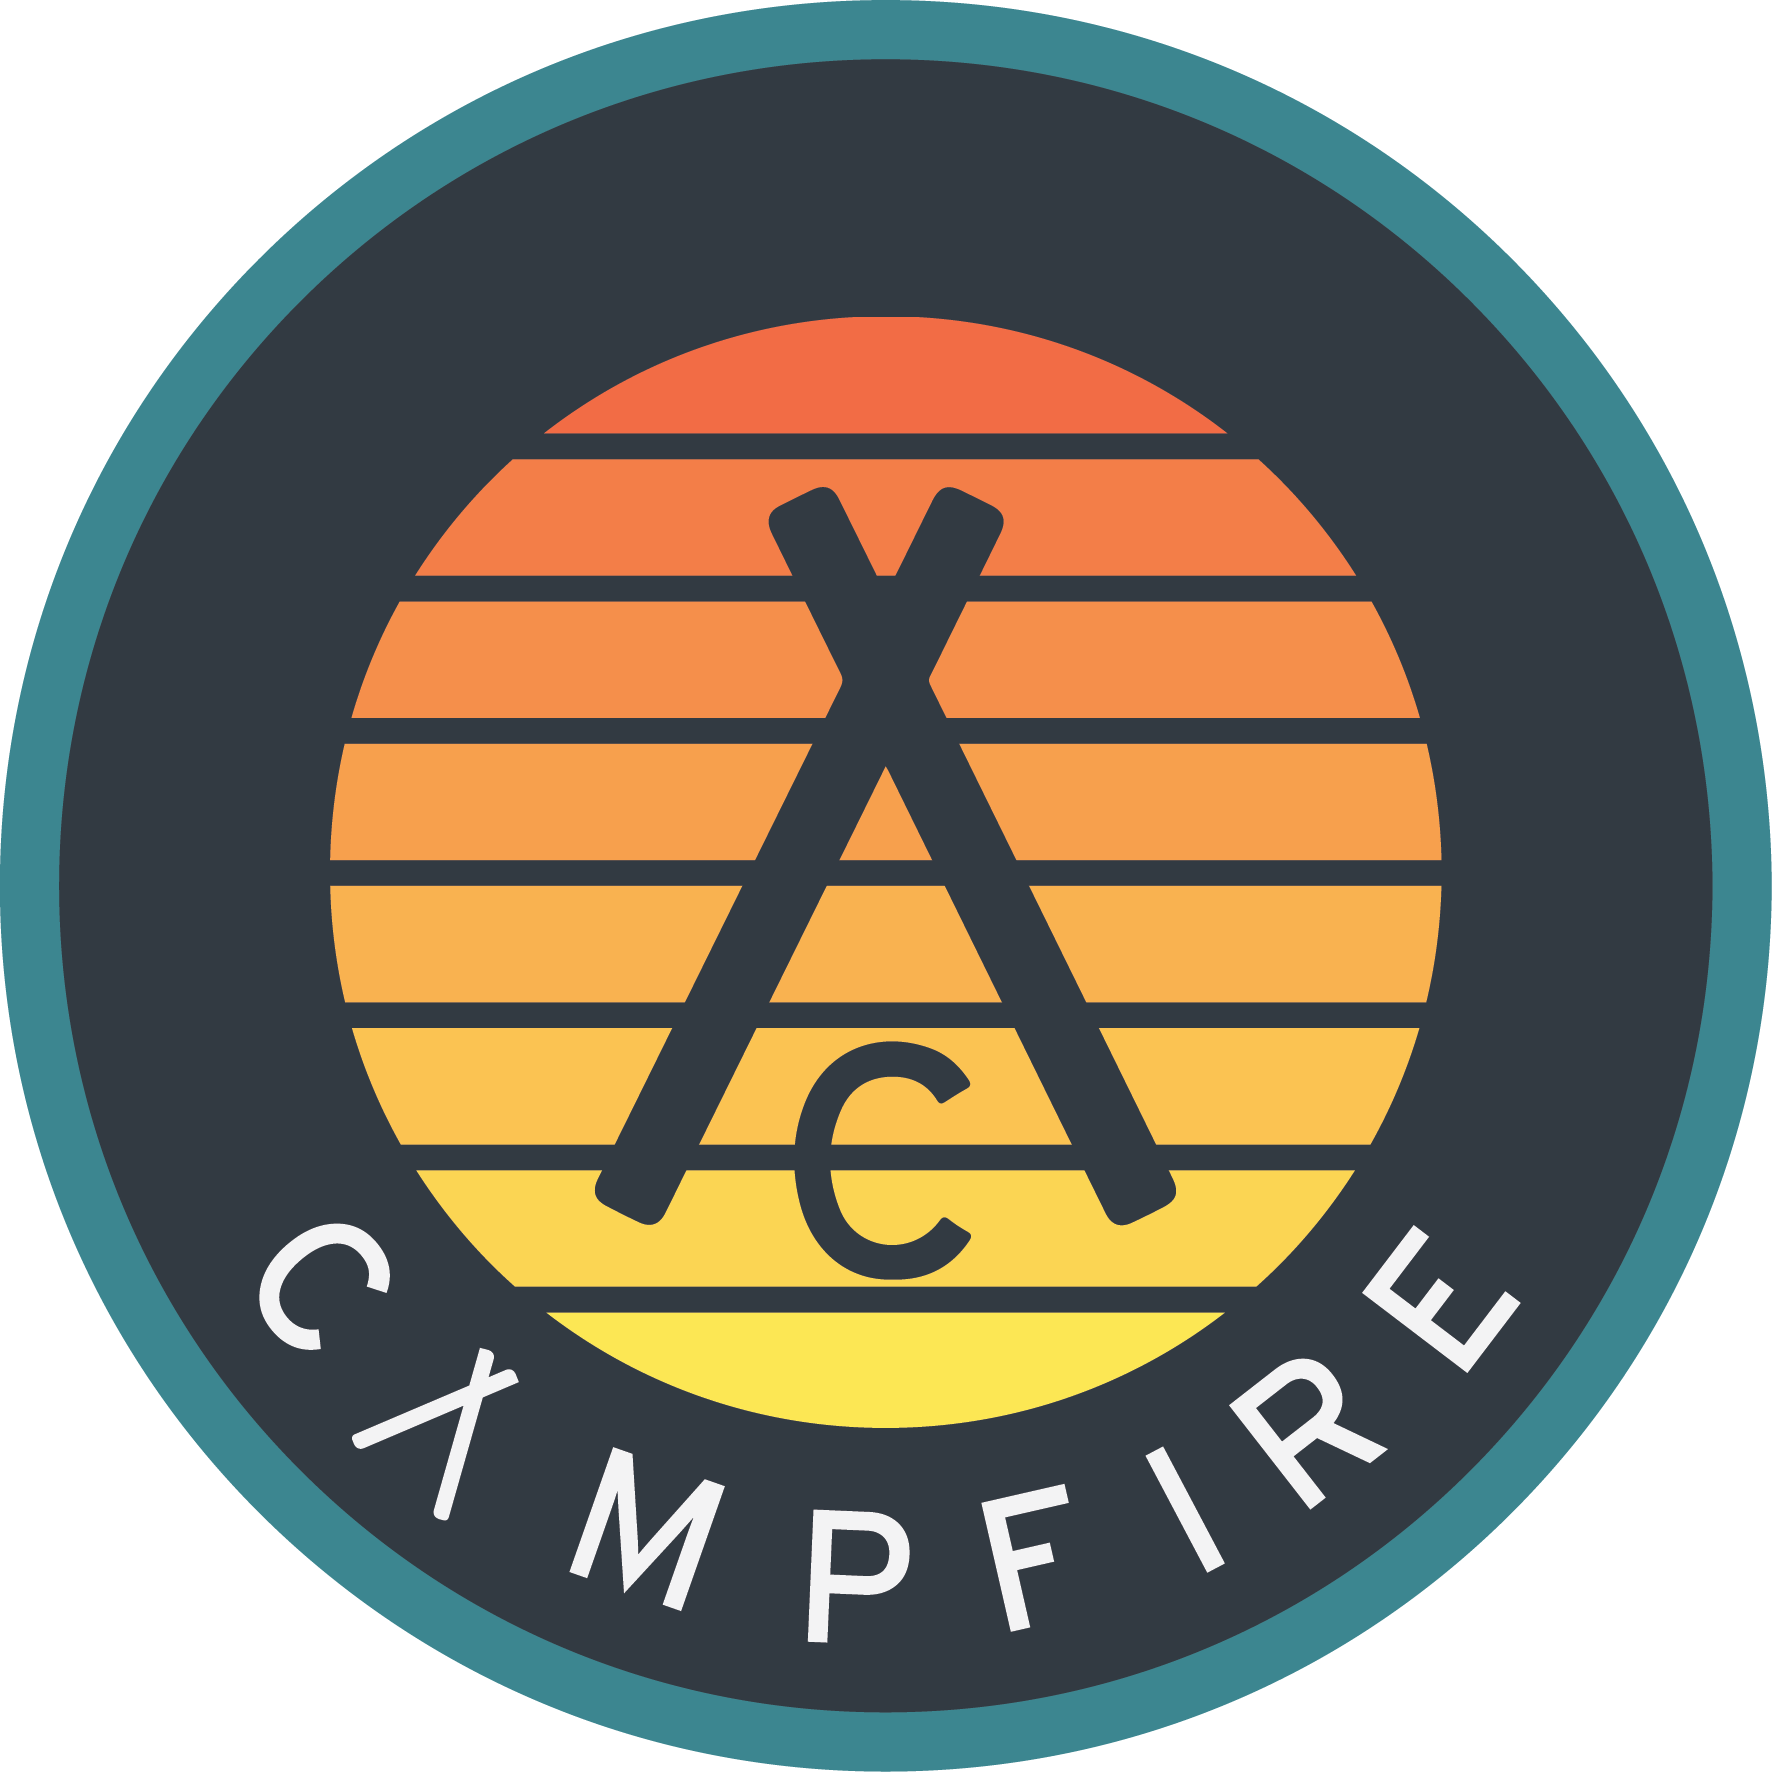 CAMPFIRE TRAILER LIMITED